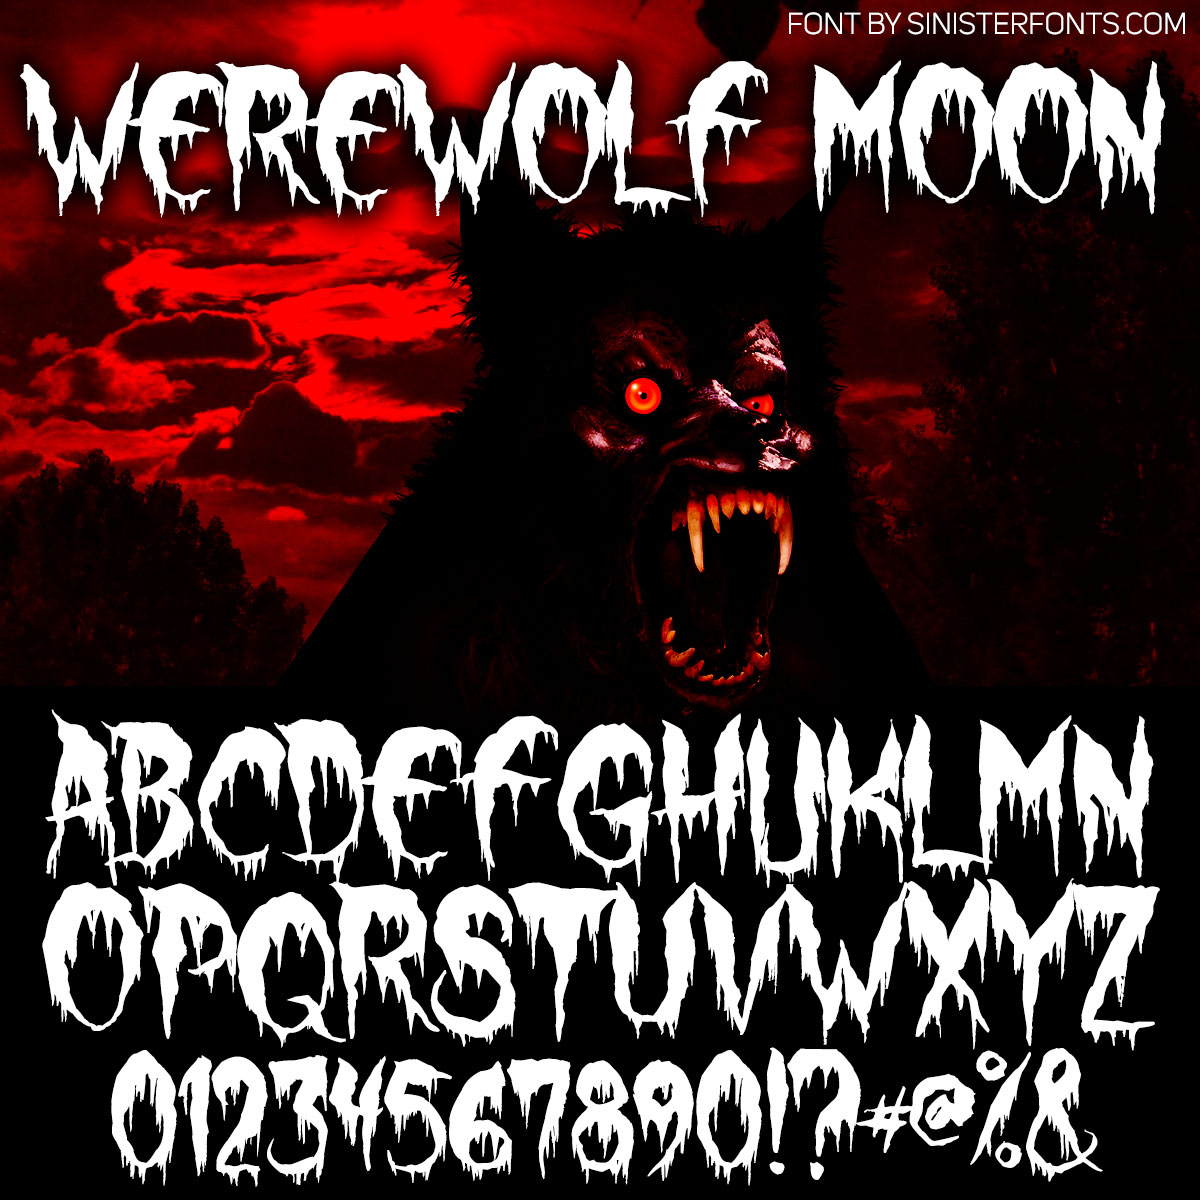 Werewolf Moon Font : Click to Download